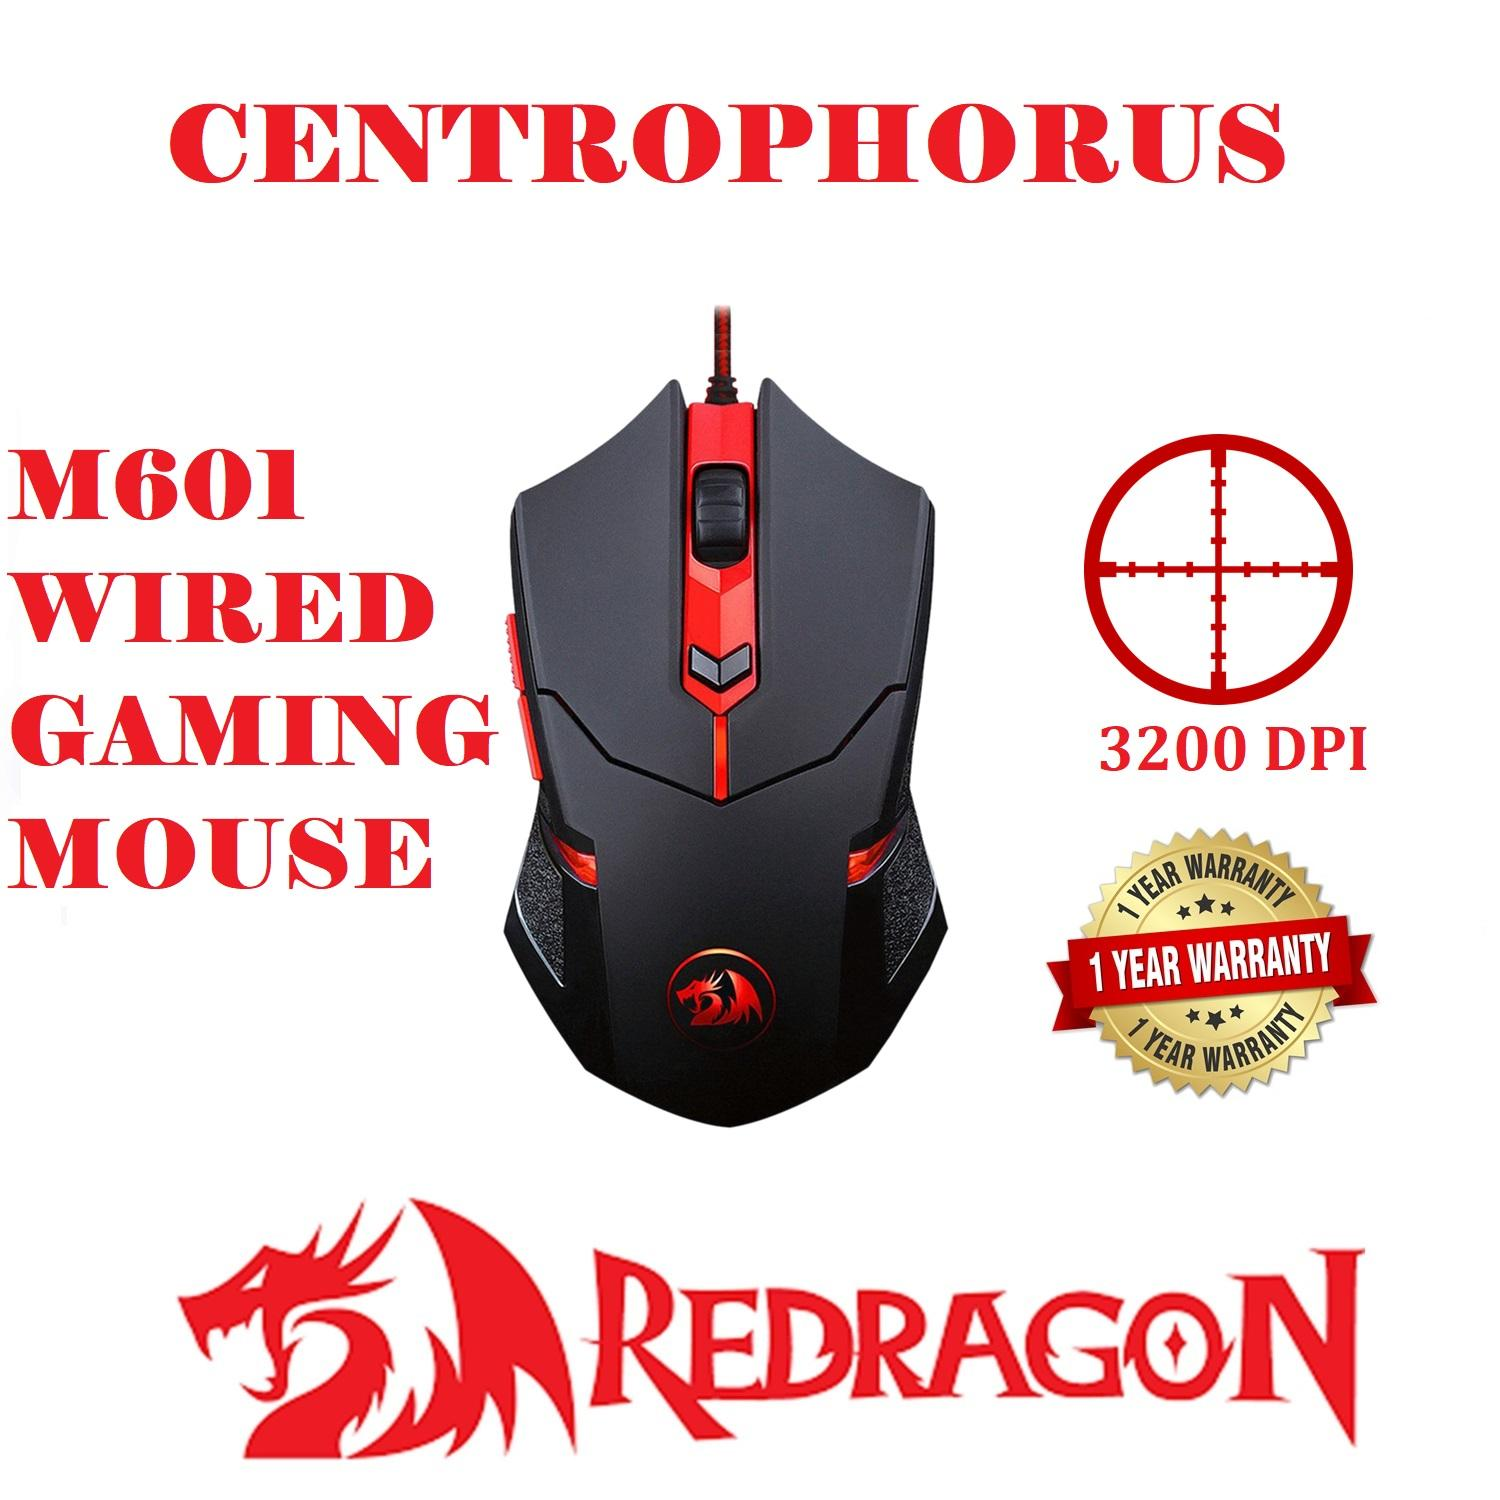 Redragon Centrophorus M601-3 3200 DPI Wired Gaming Mouse